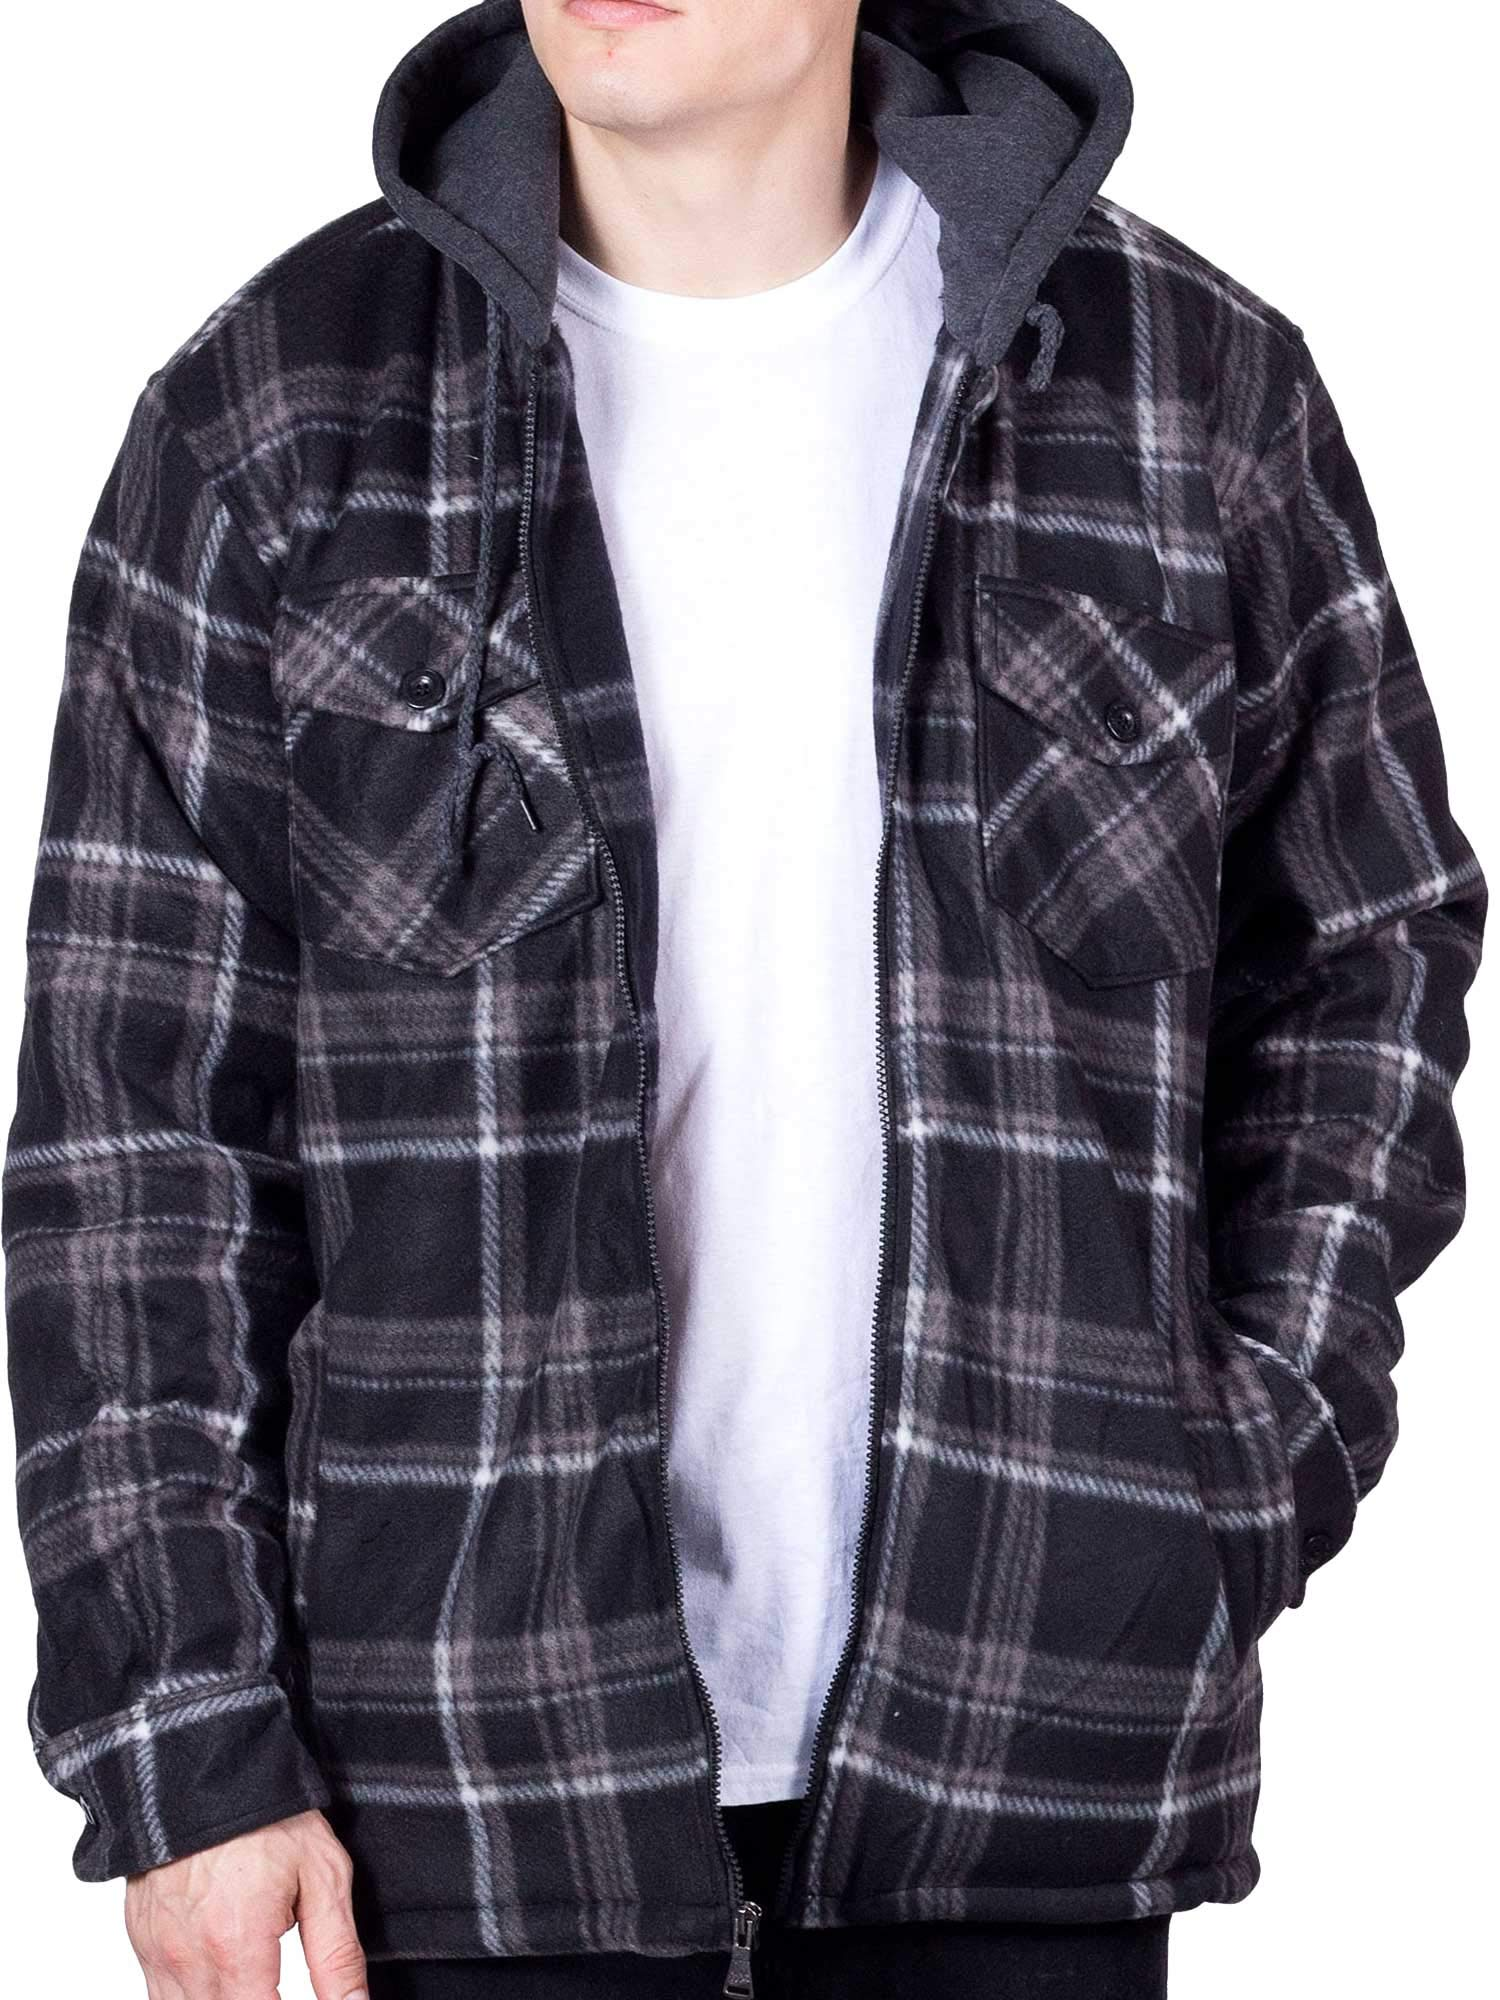 Visive Hoodie Flannel Fleece Jacket for Men Zip Up Big & Tall Lined Sherpa Sweatshirts (X-Large,Black/Grey) by Visive